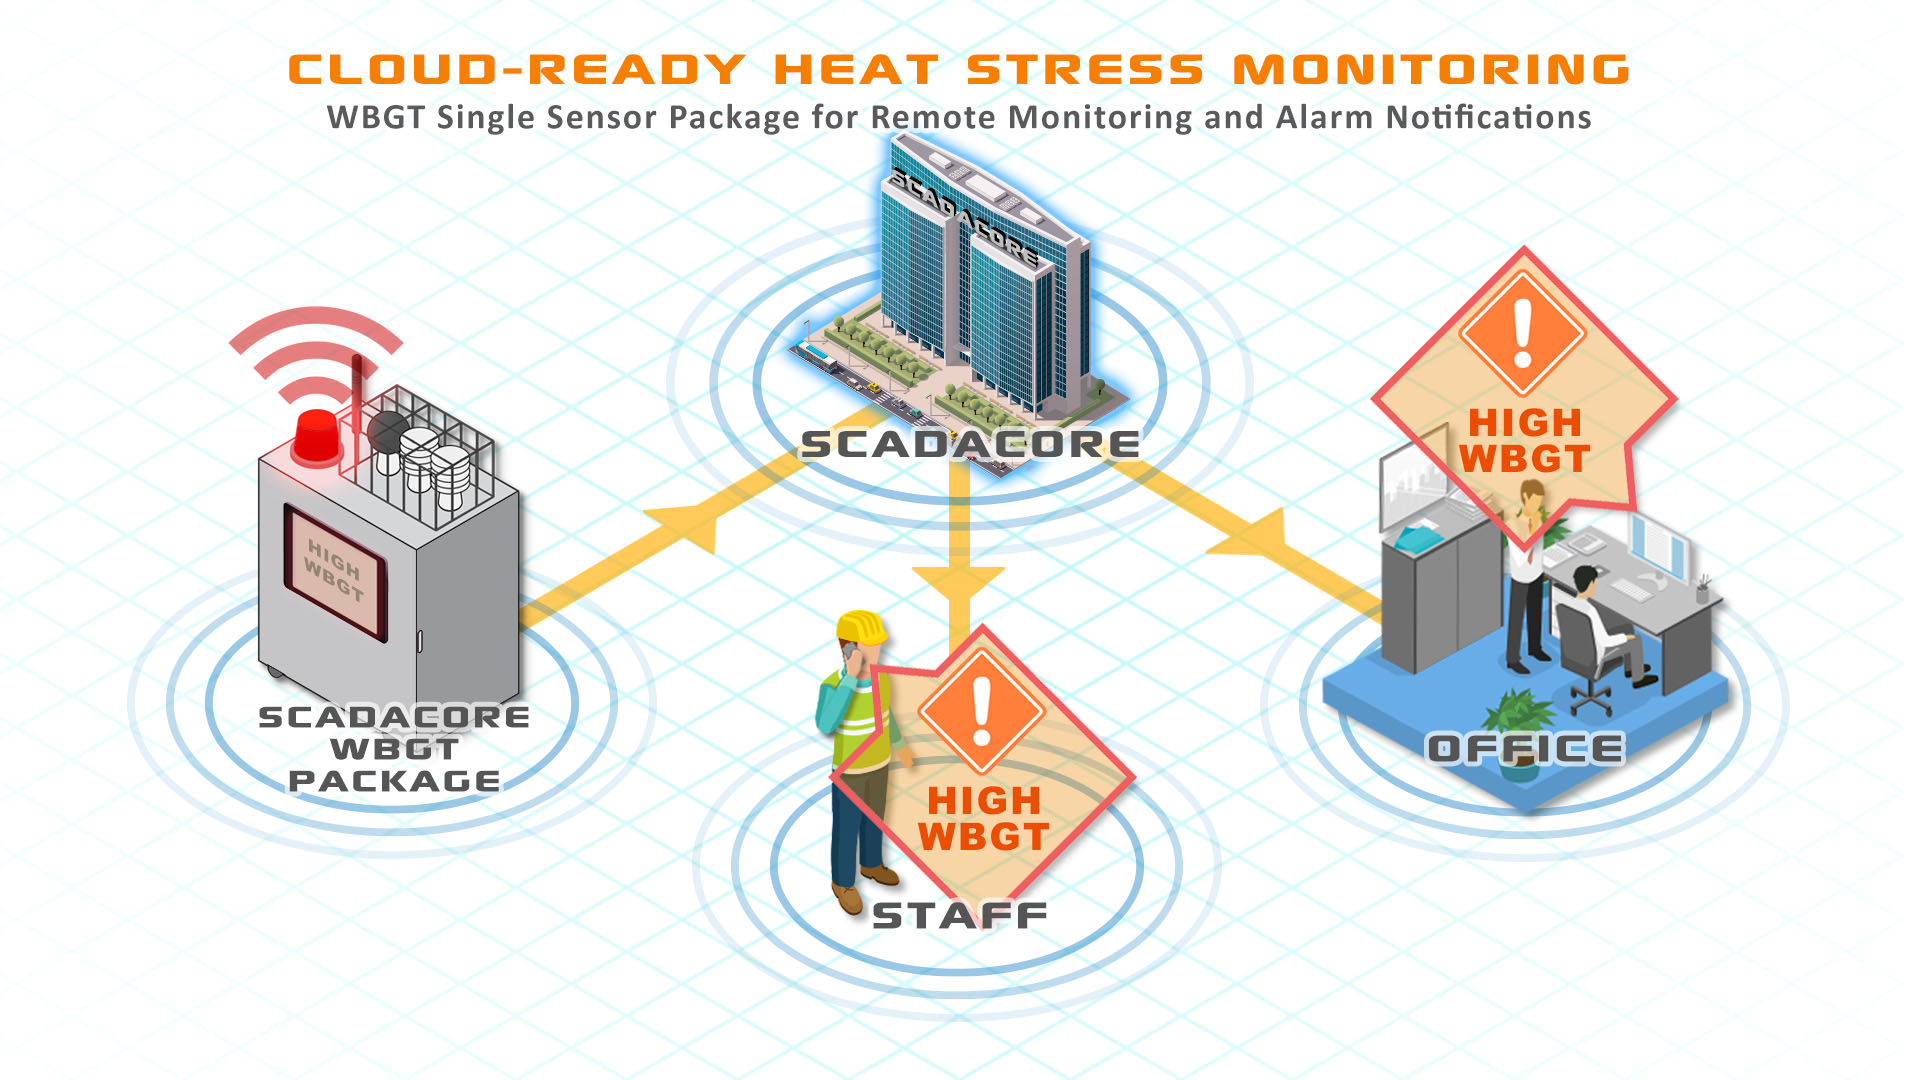 Cloud-Ready WBGT Heat Stress Monitoring for HSE, Manufacturing, and Military